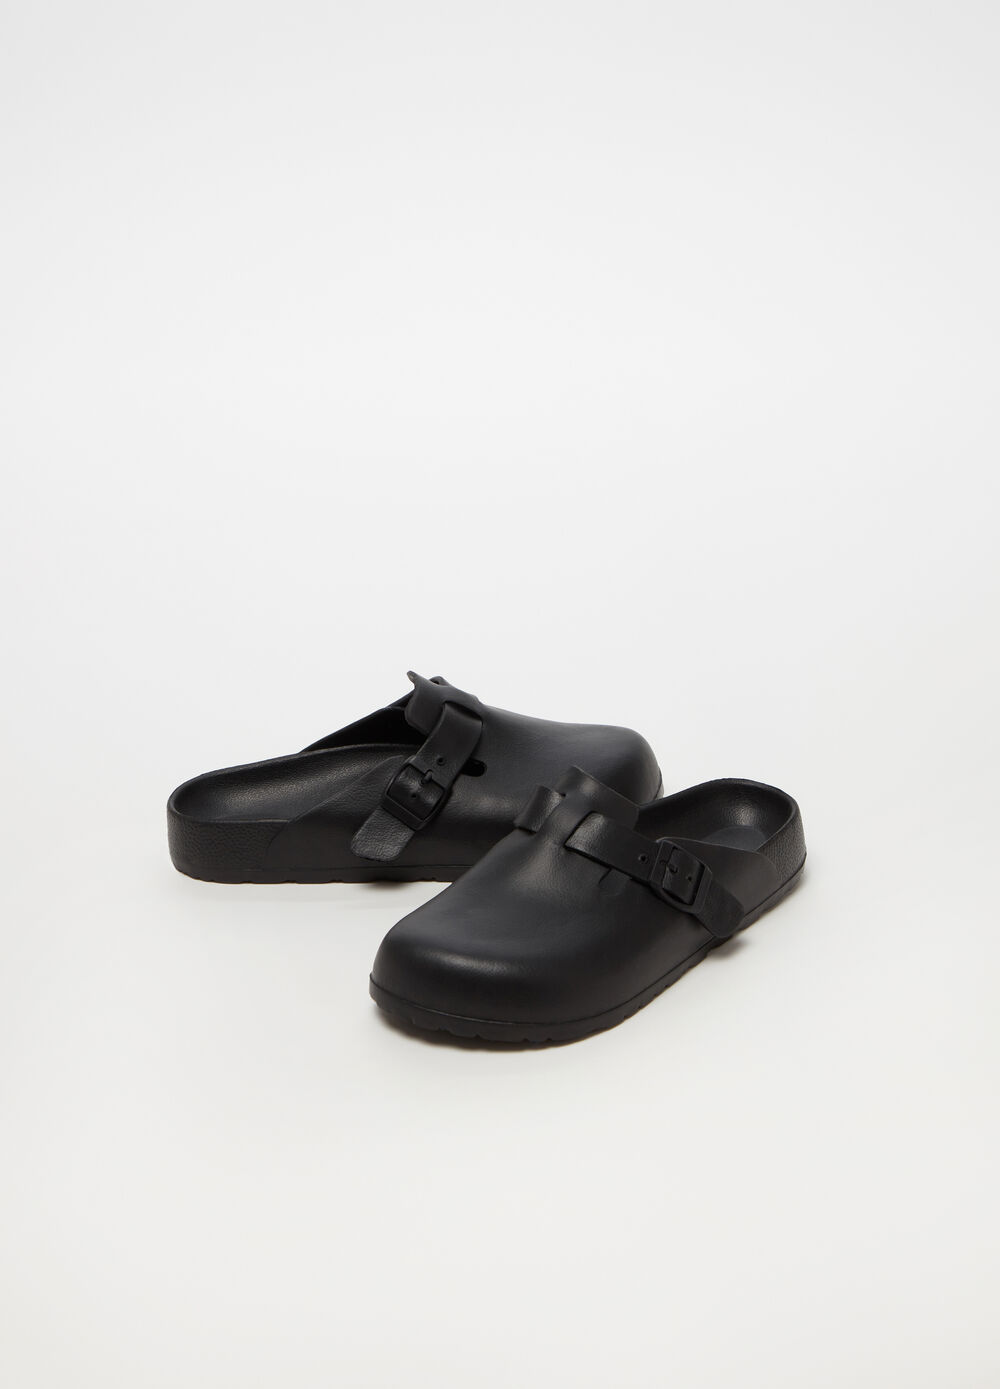 Leather-look clogs with buckle